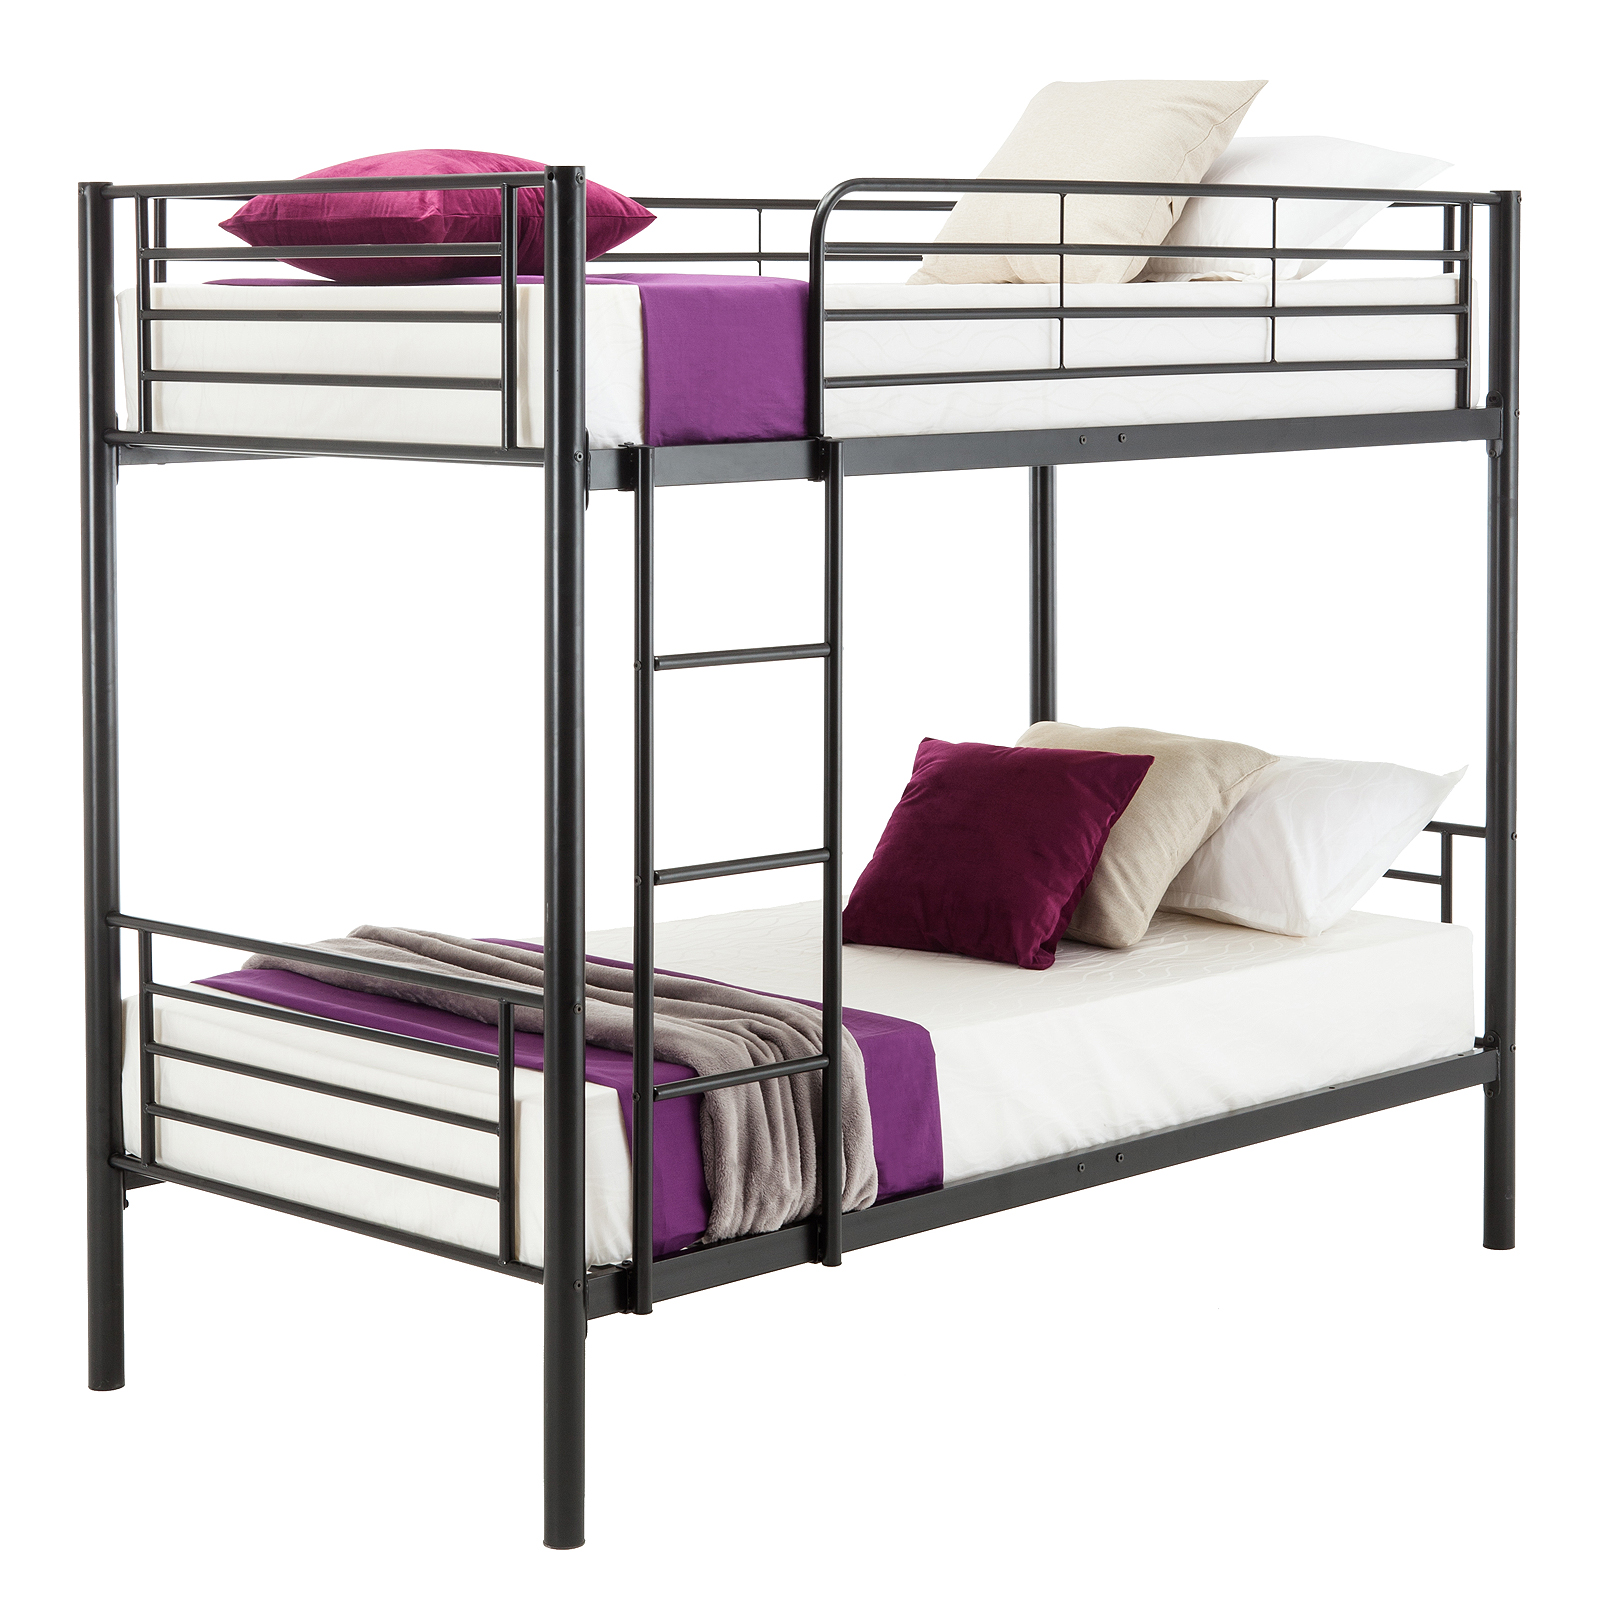 Metal Bunk Beds Frame Twin Over Twin Ladder Bedroom Dorm